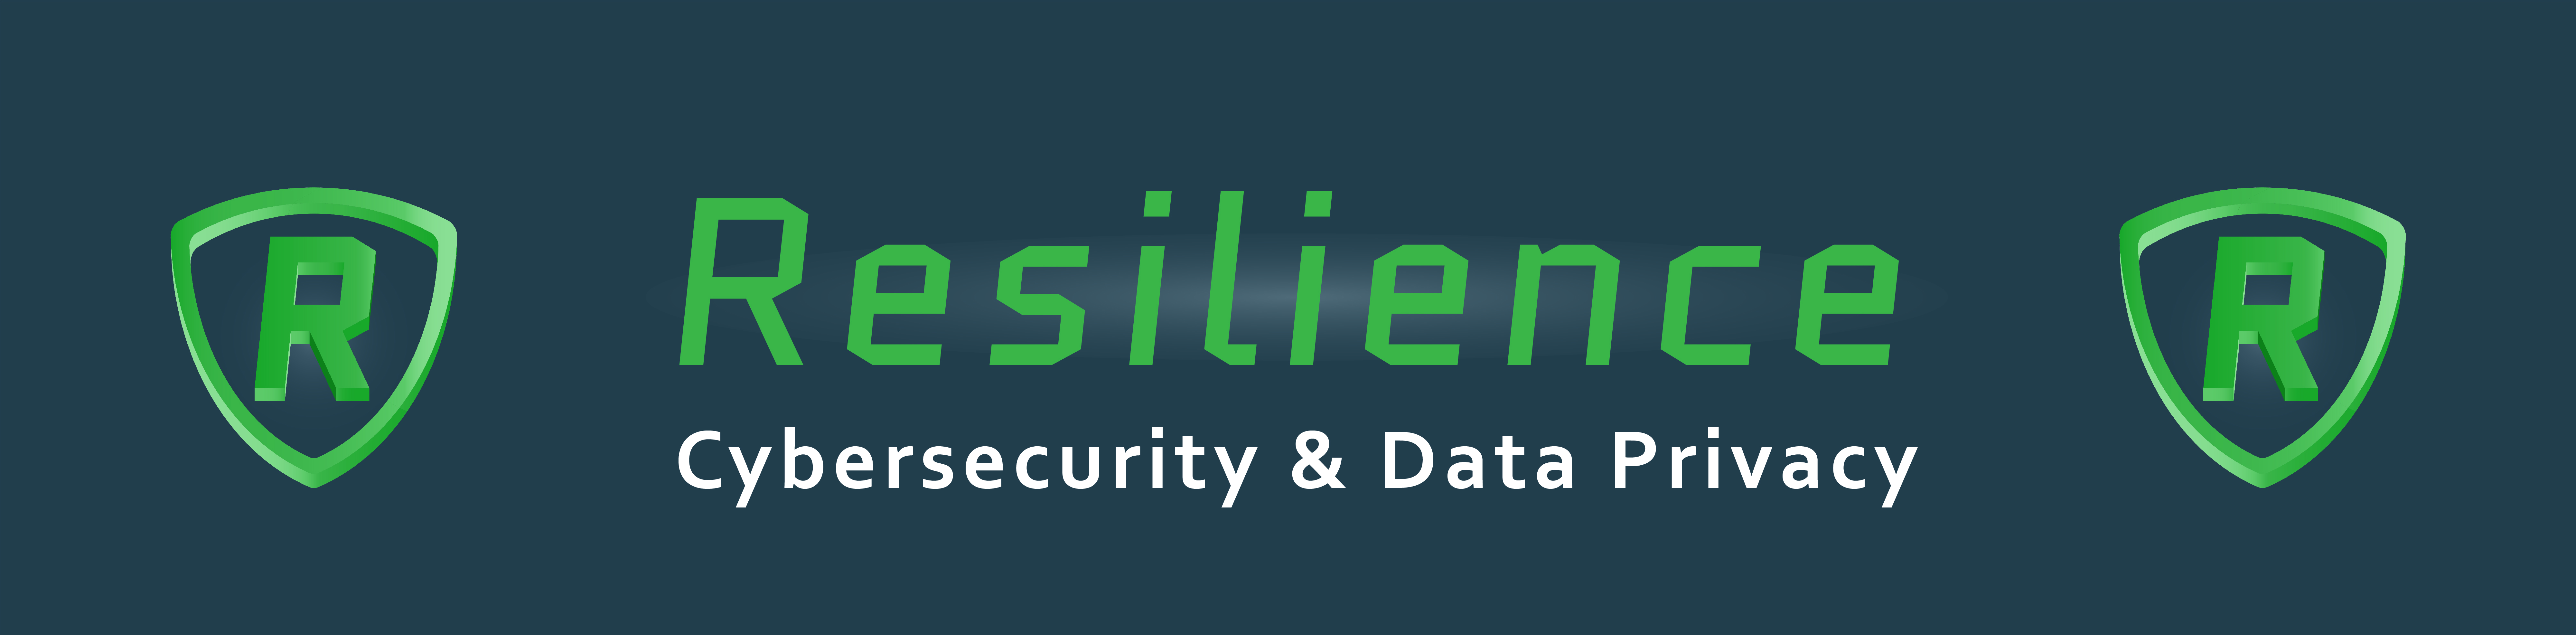 Resilience Cybersecurity